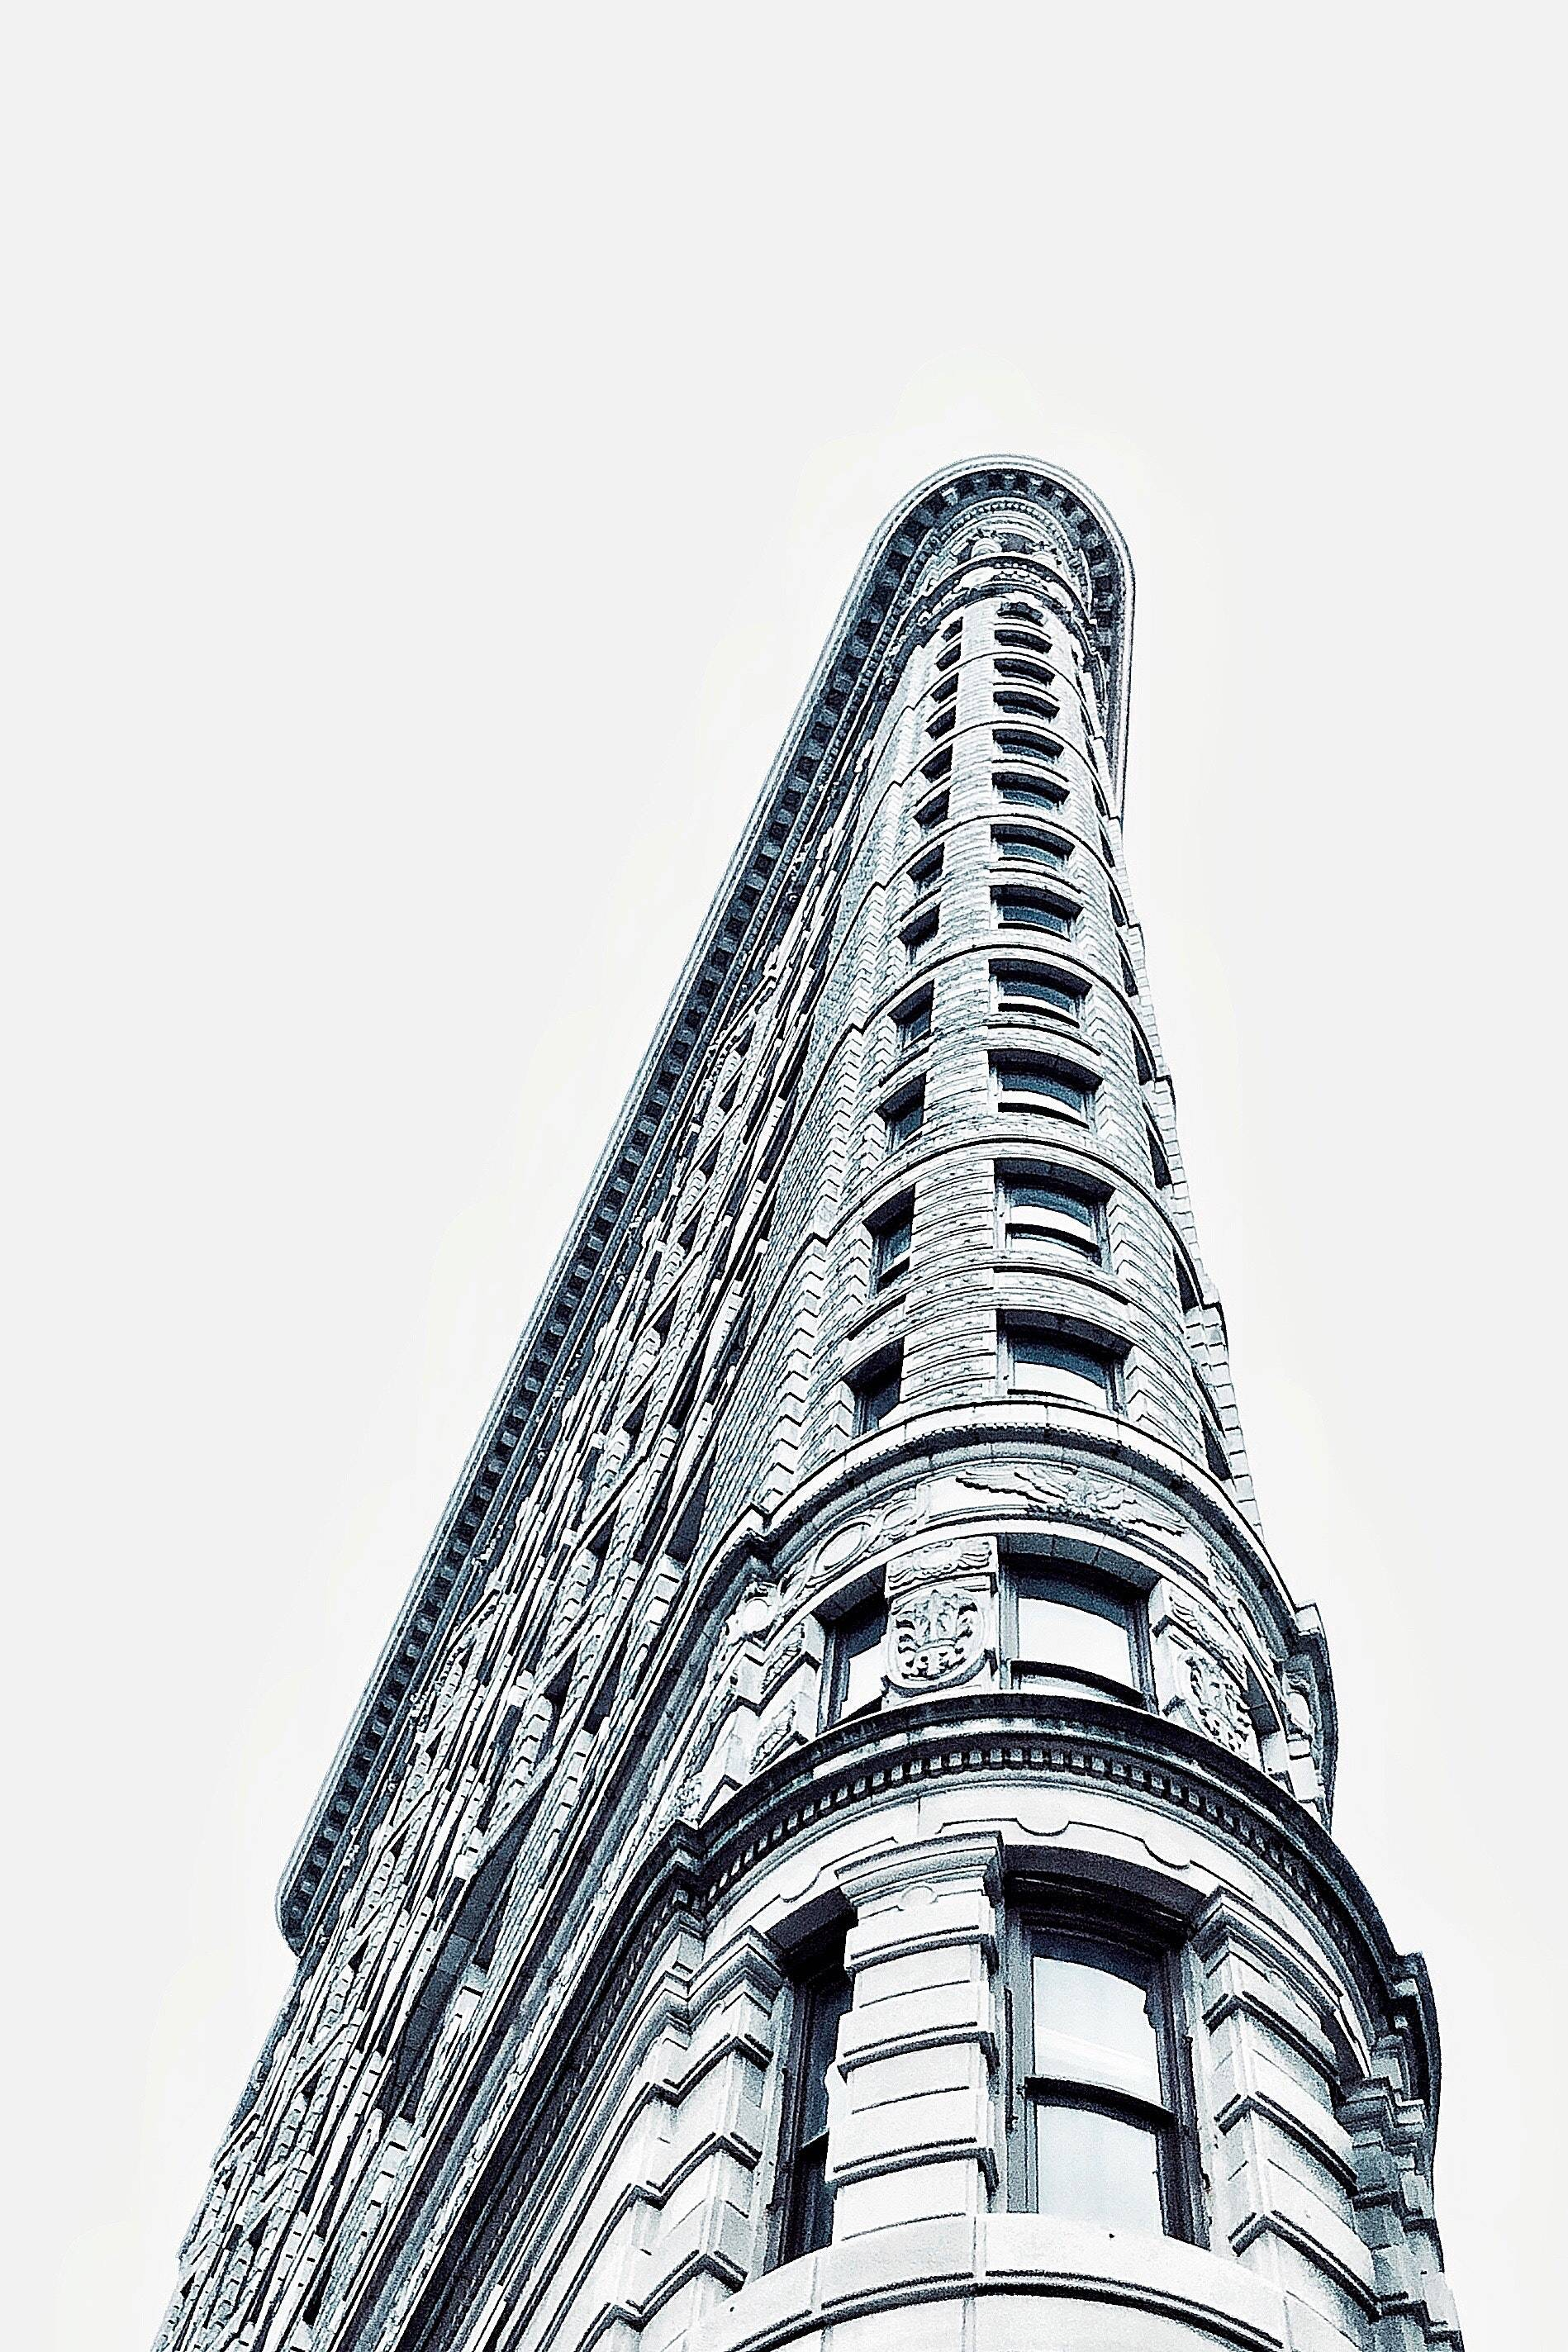 New York City's Flat Iron Building. Image